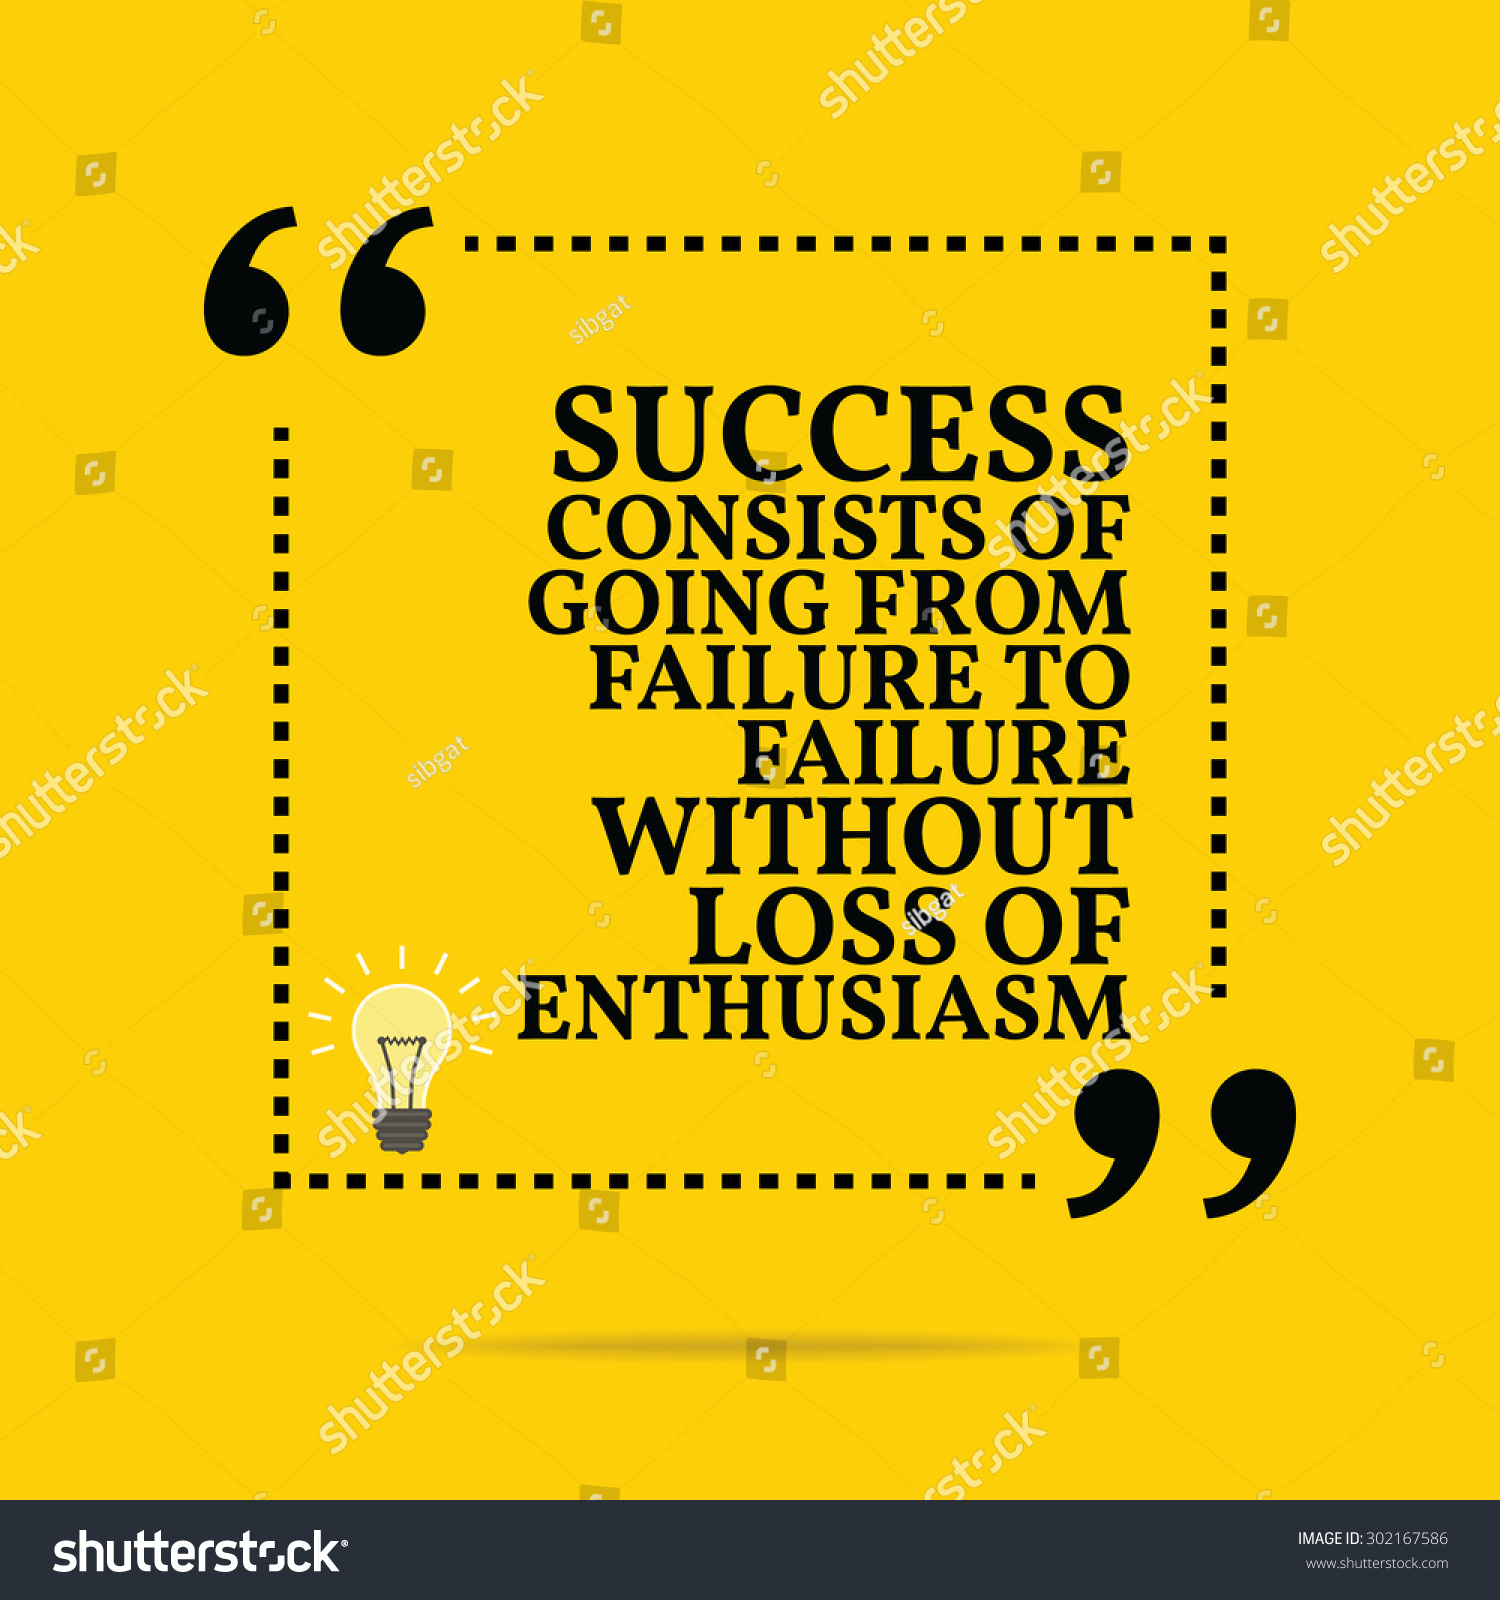 Inspirational Quotes About Failure: Inspirational Motivational Quote Success Consists Going